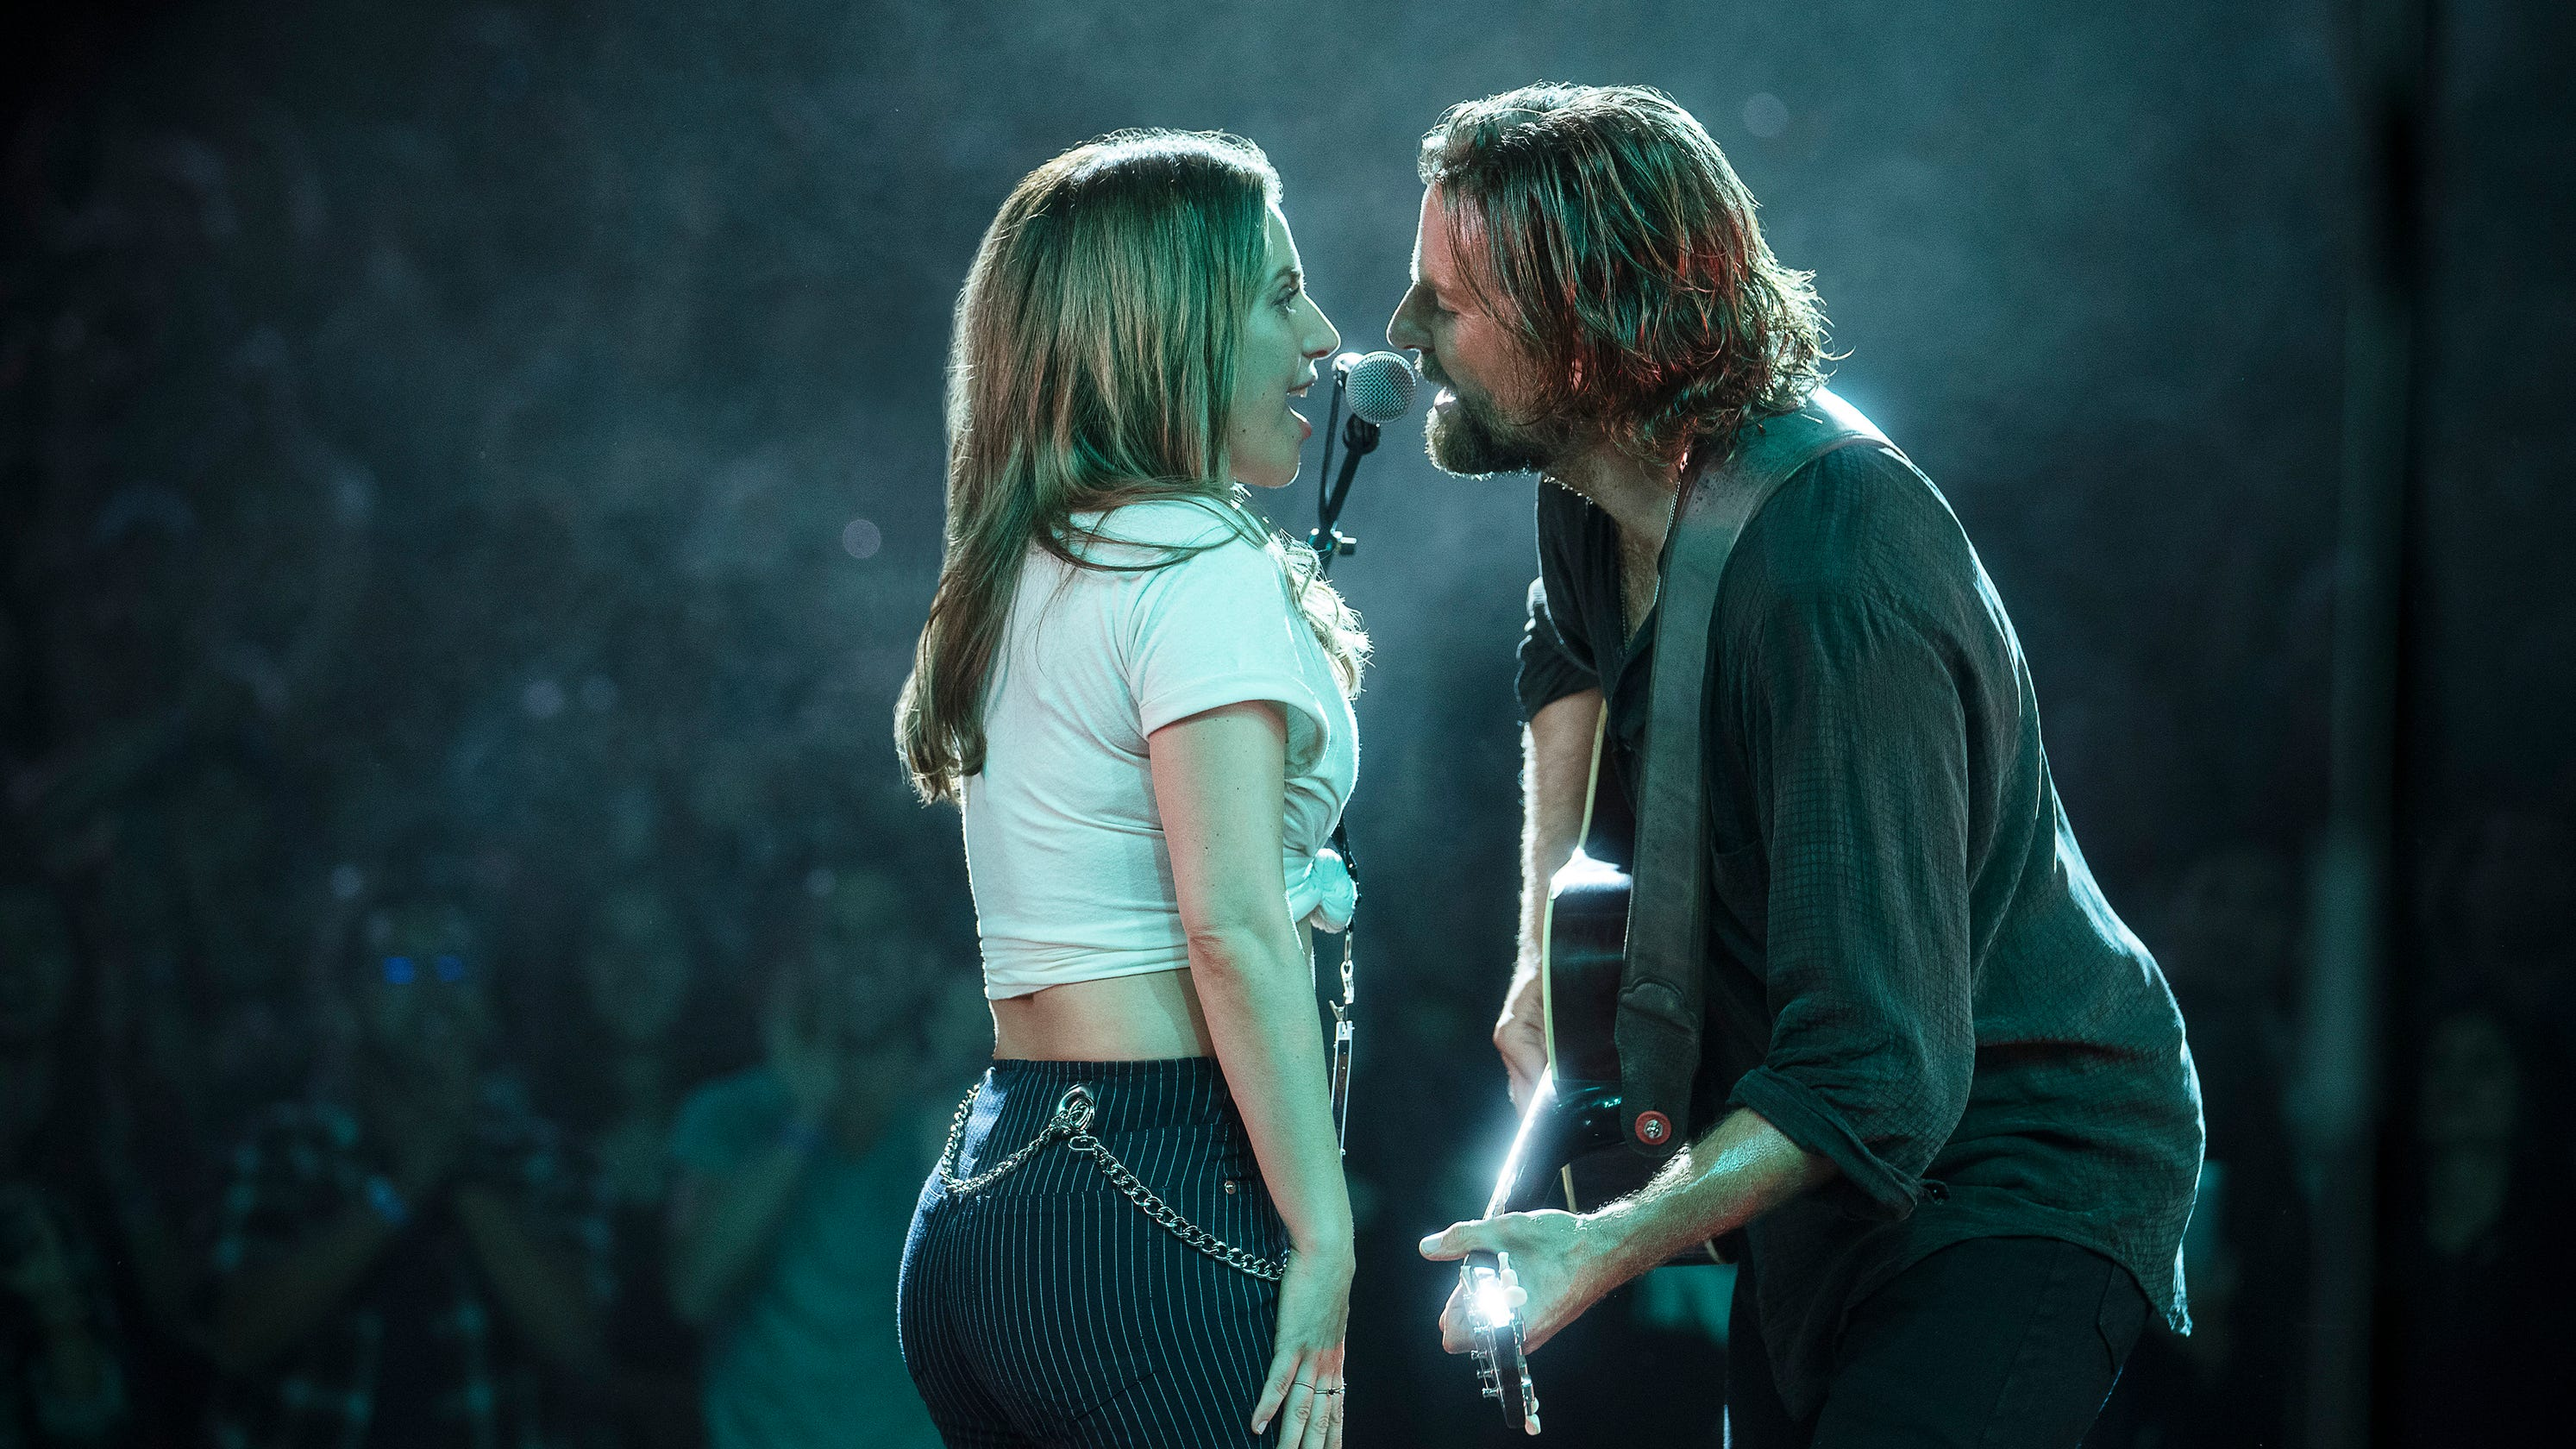 A Star is Born' movie is a lesson in addiction treatment